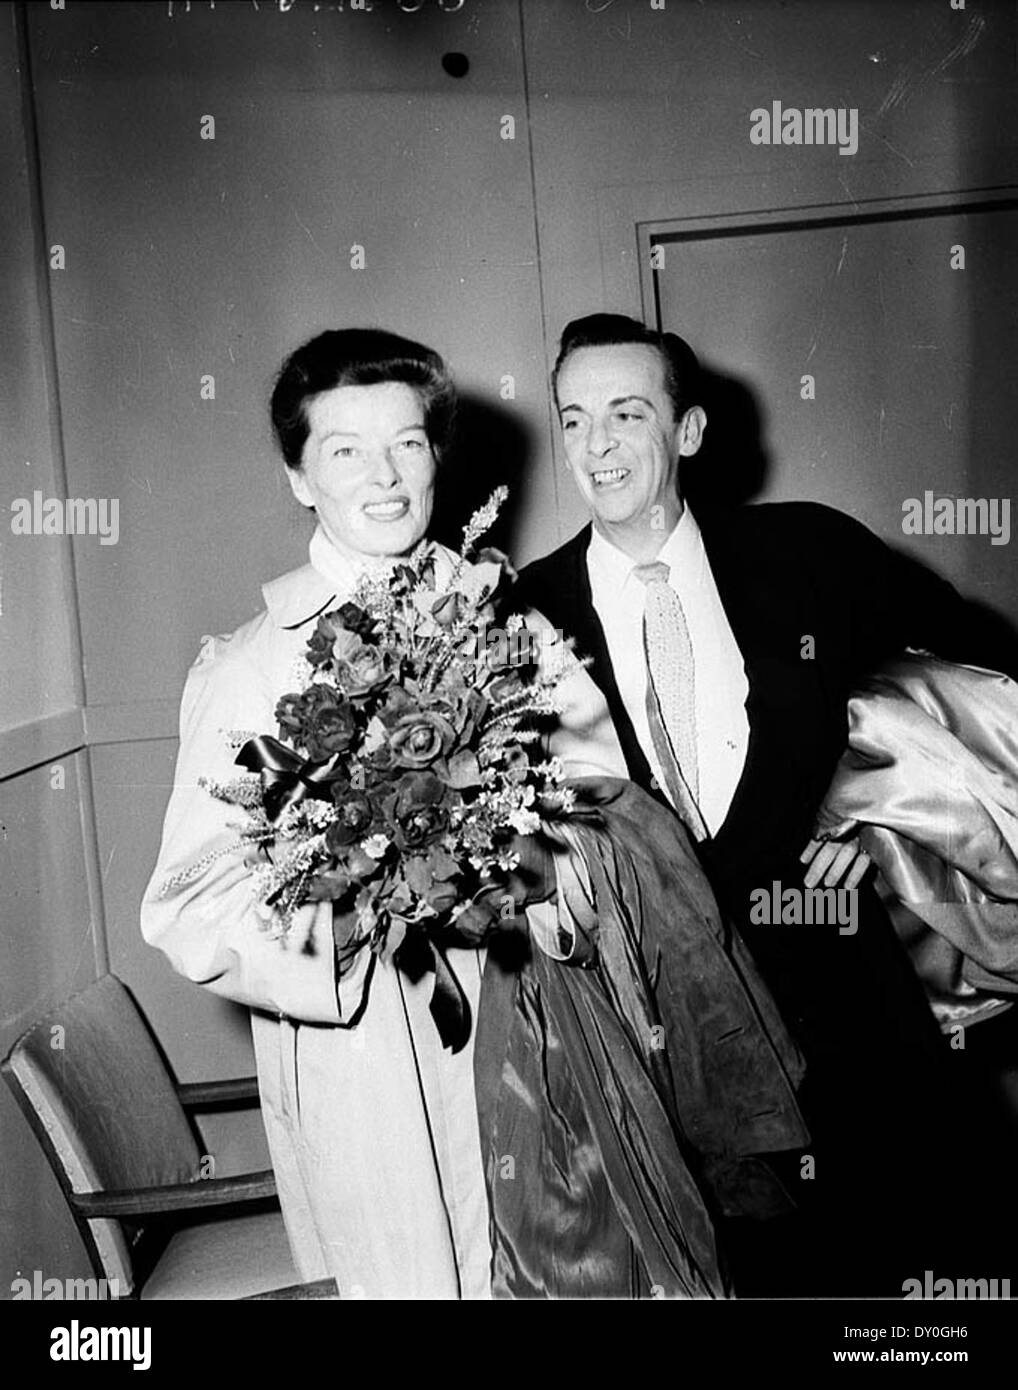 Katharine Hepburn and Robert Helpmann arrive at Kingsford Smith Airport, Sydney, 1955 / Australian Photographic Agency (APA) Collection - Stock Image